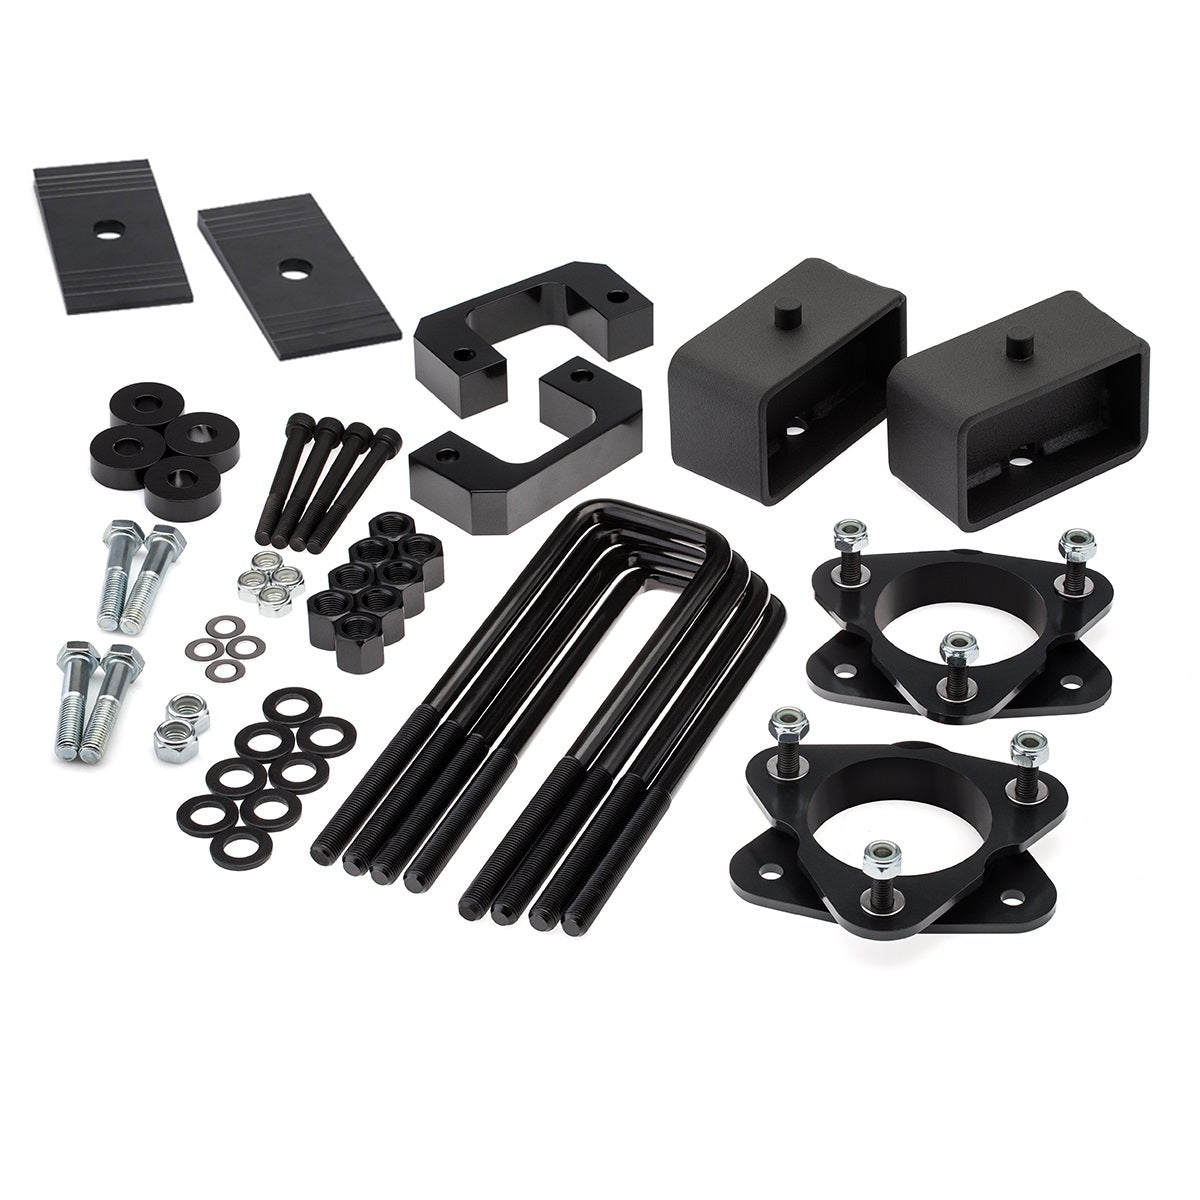 2007-2019 Chevy Silverado 1500 Full Lift Kit with Shims and Differential Drop Kit